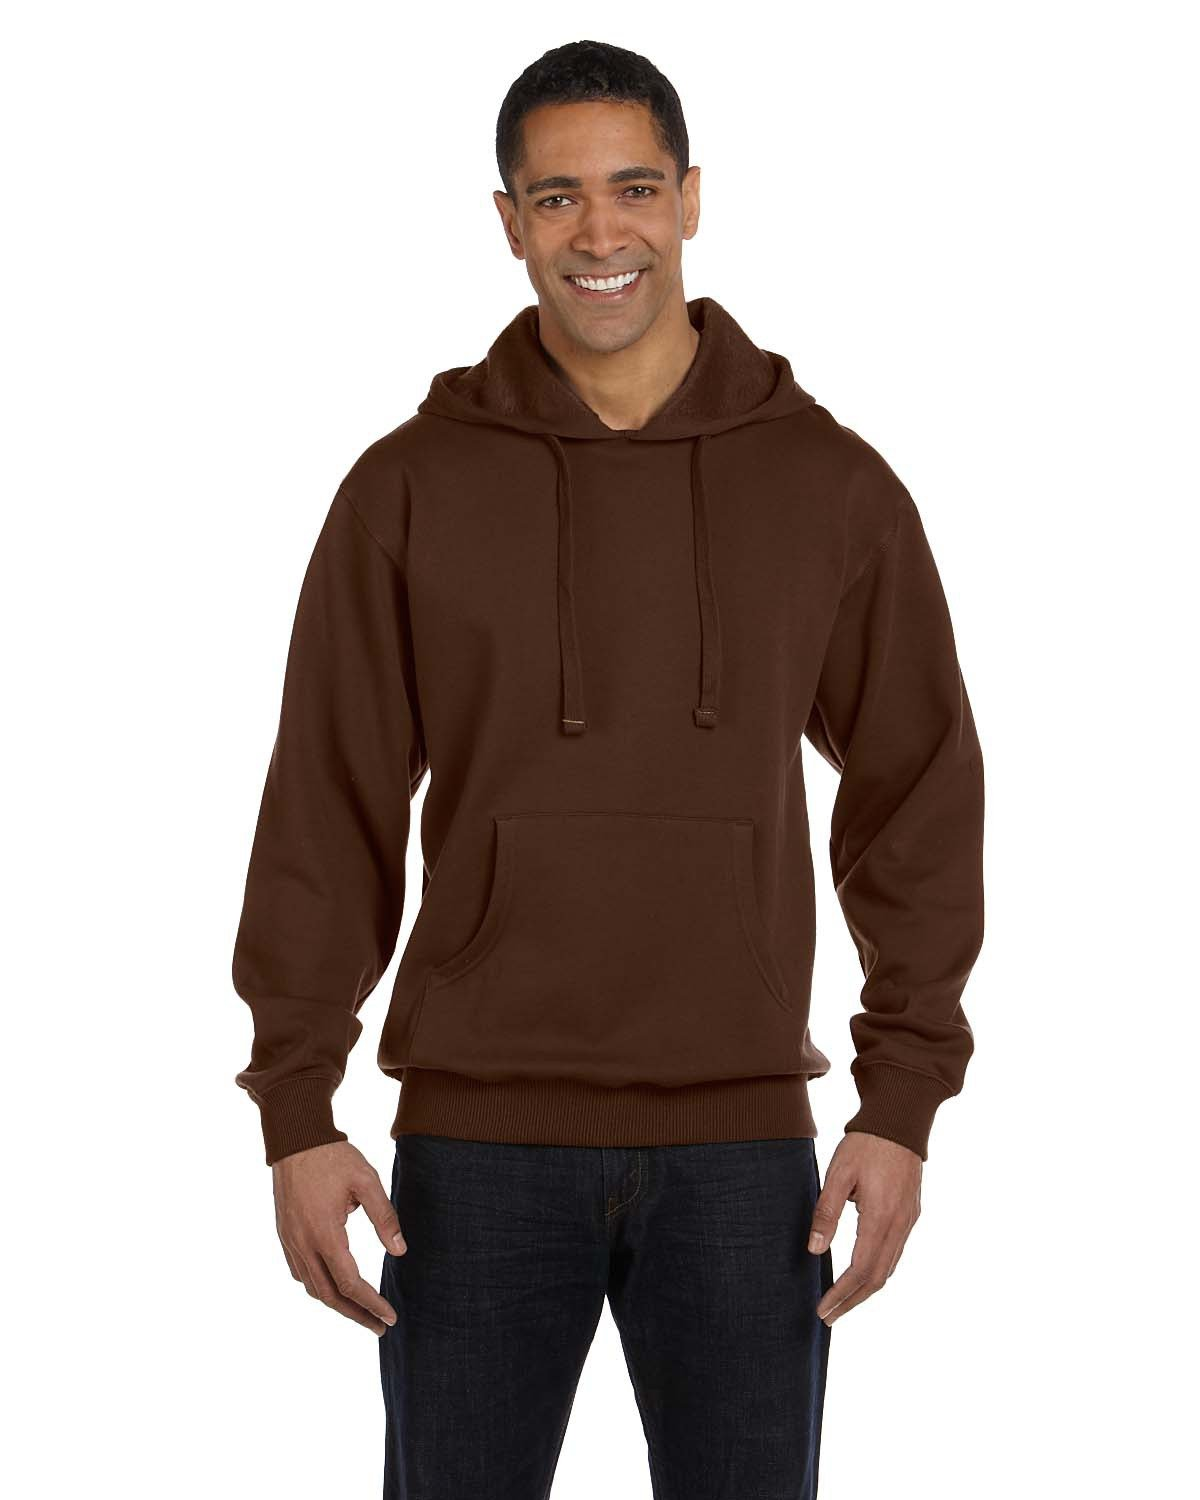 econscious Adult Organic/Recycled Pullover Hooded Sweatshirt EARTH